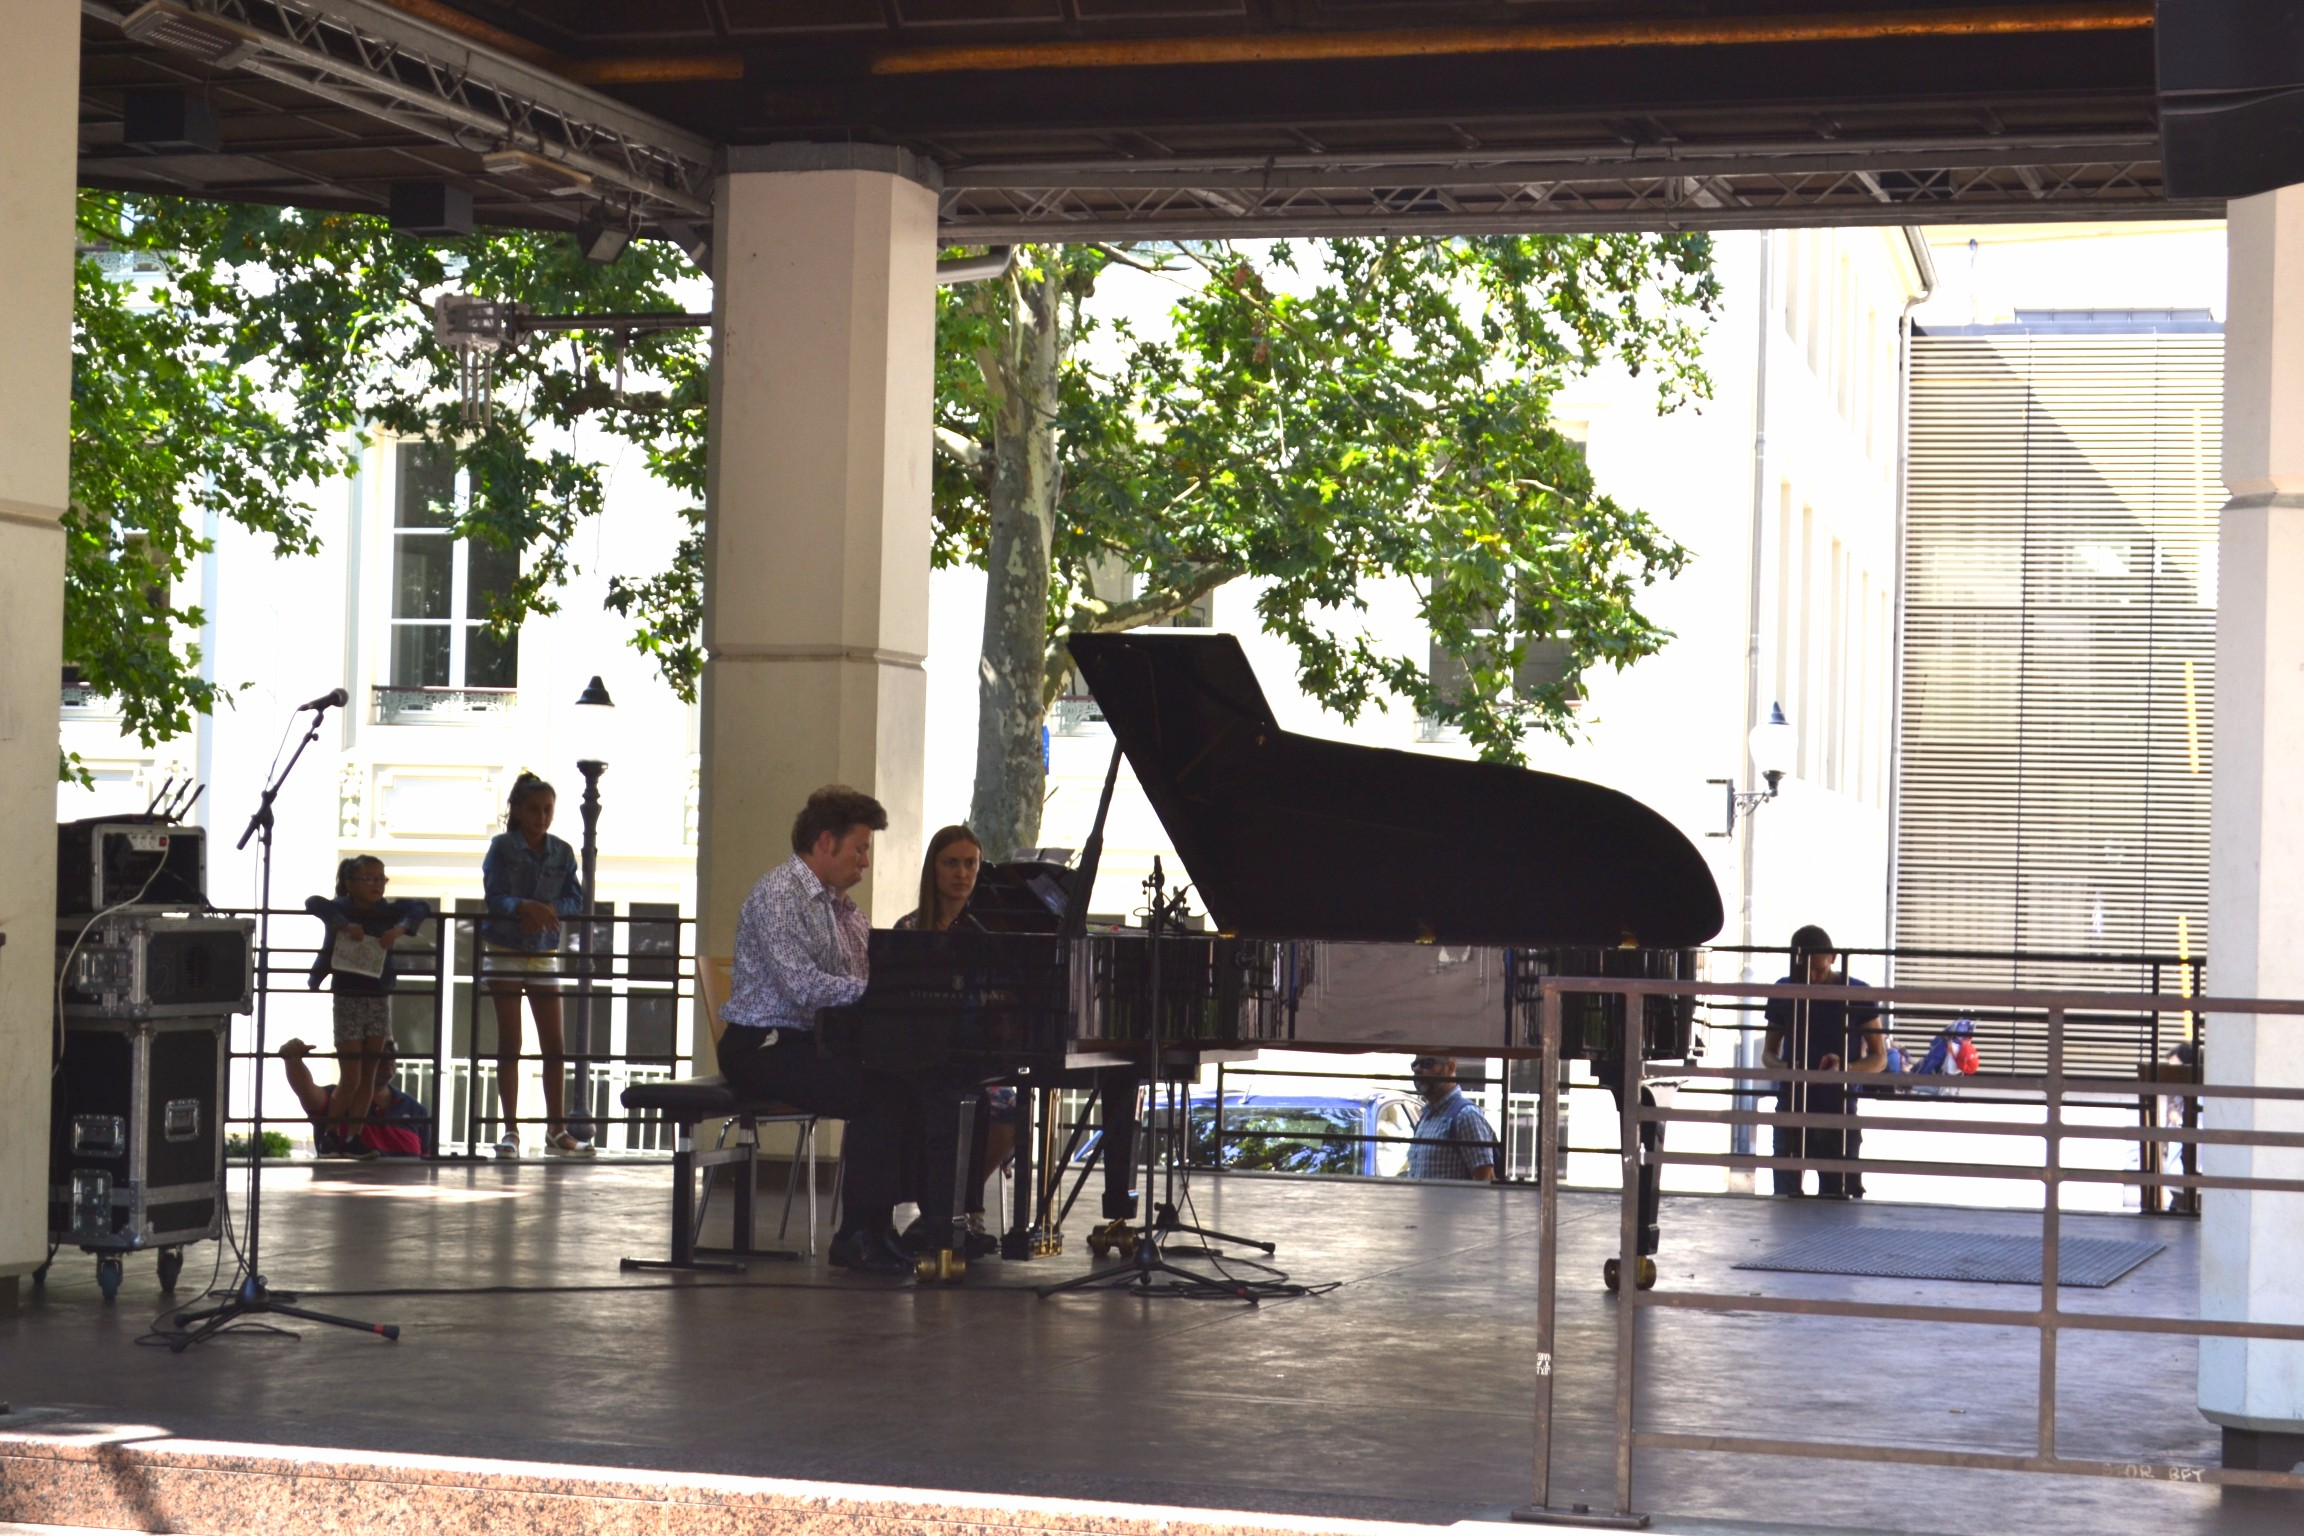 TwoMenAboutTown-Brexit-EU-Luxembourg-piano-place-d-armes